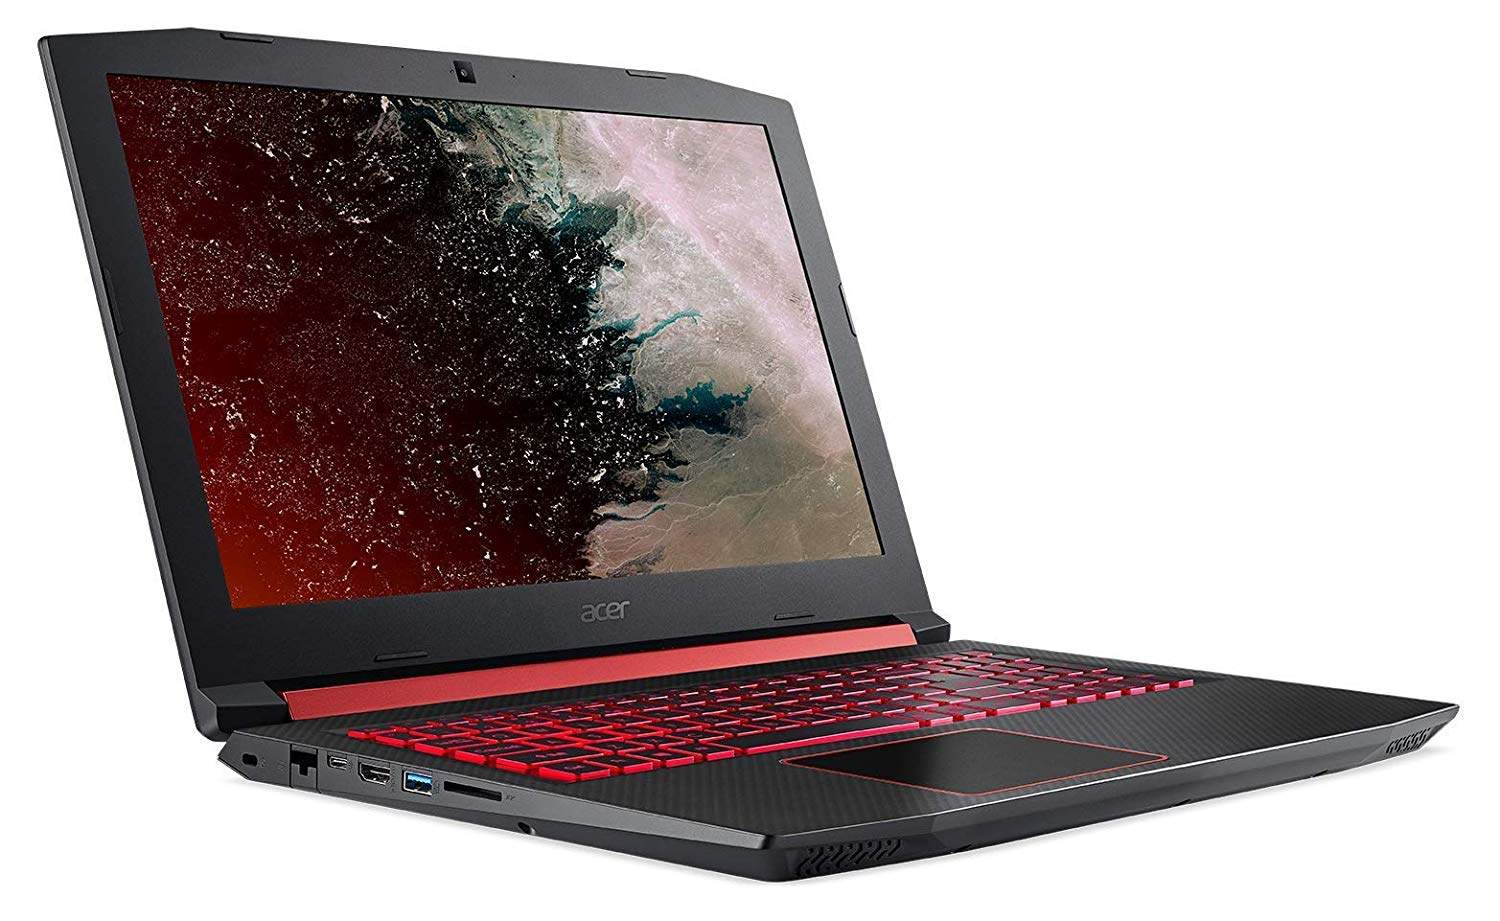 Acer Nitro Core I7 8th Gen 15.6-inch Gaming FHD Laptop (8GB/1TB HDD/Windows 10/4GB Graphics/Black/2.7 Kg), AN515-52